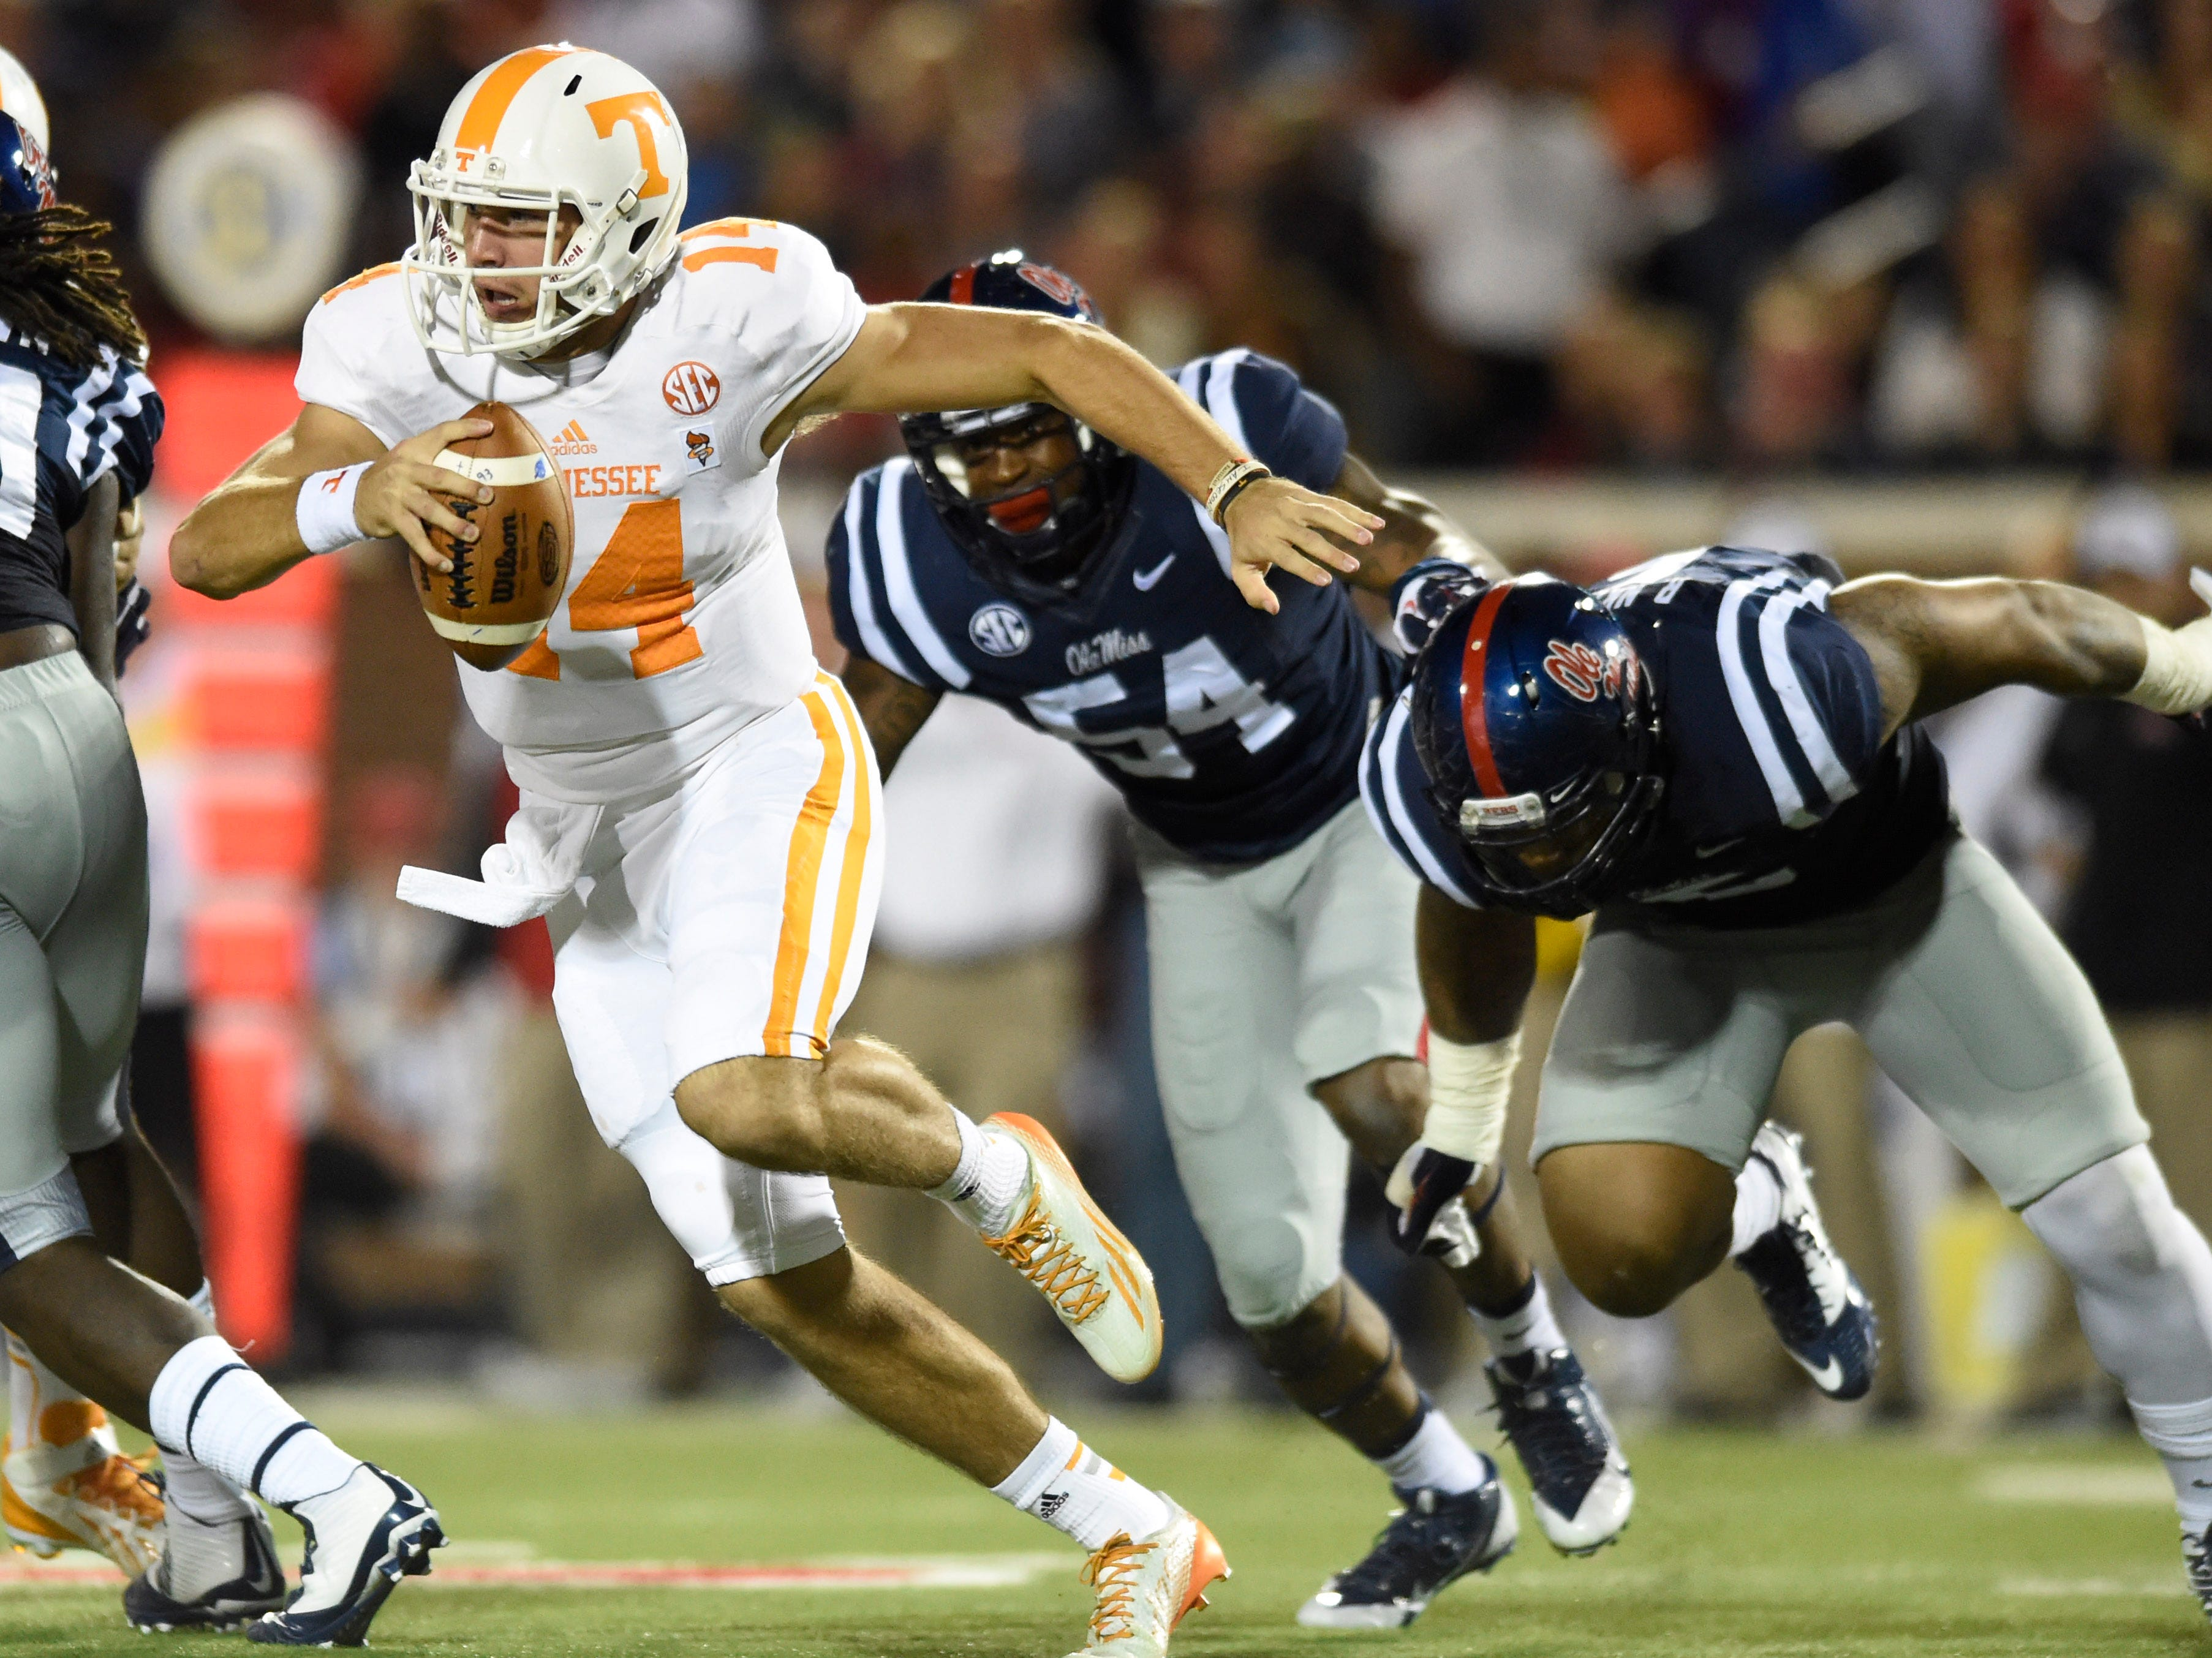 Tennessee quarterback Justin Worley (14) tries to escape the Ole Miss pass rush during the first half at Vaught-Hemingway Stadium, Saturday, Oct.18, 2014 in Oxford, Miss.